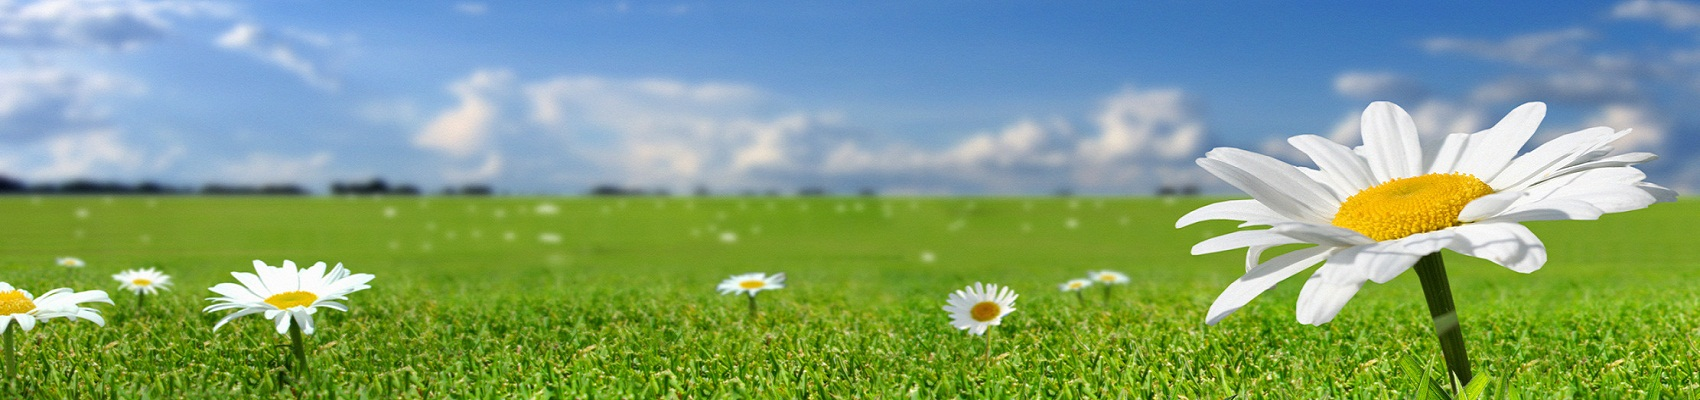 flower-camomile-summer-field-grass-blue-sky-v2